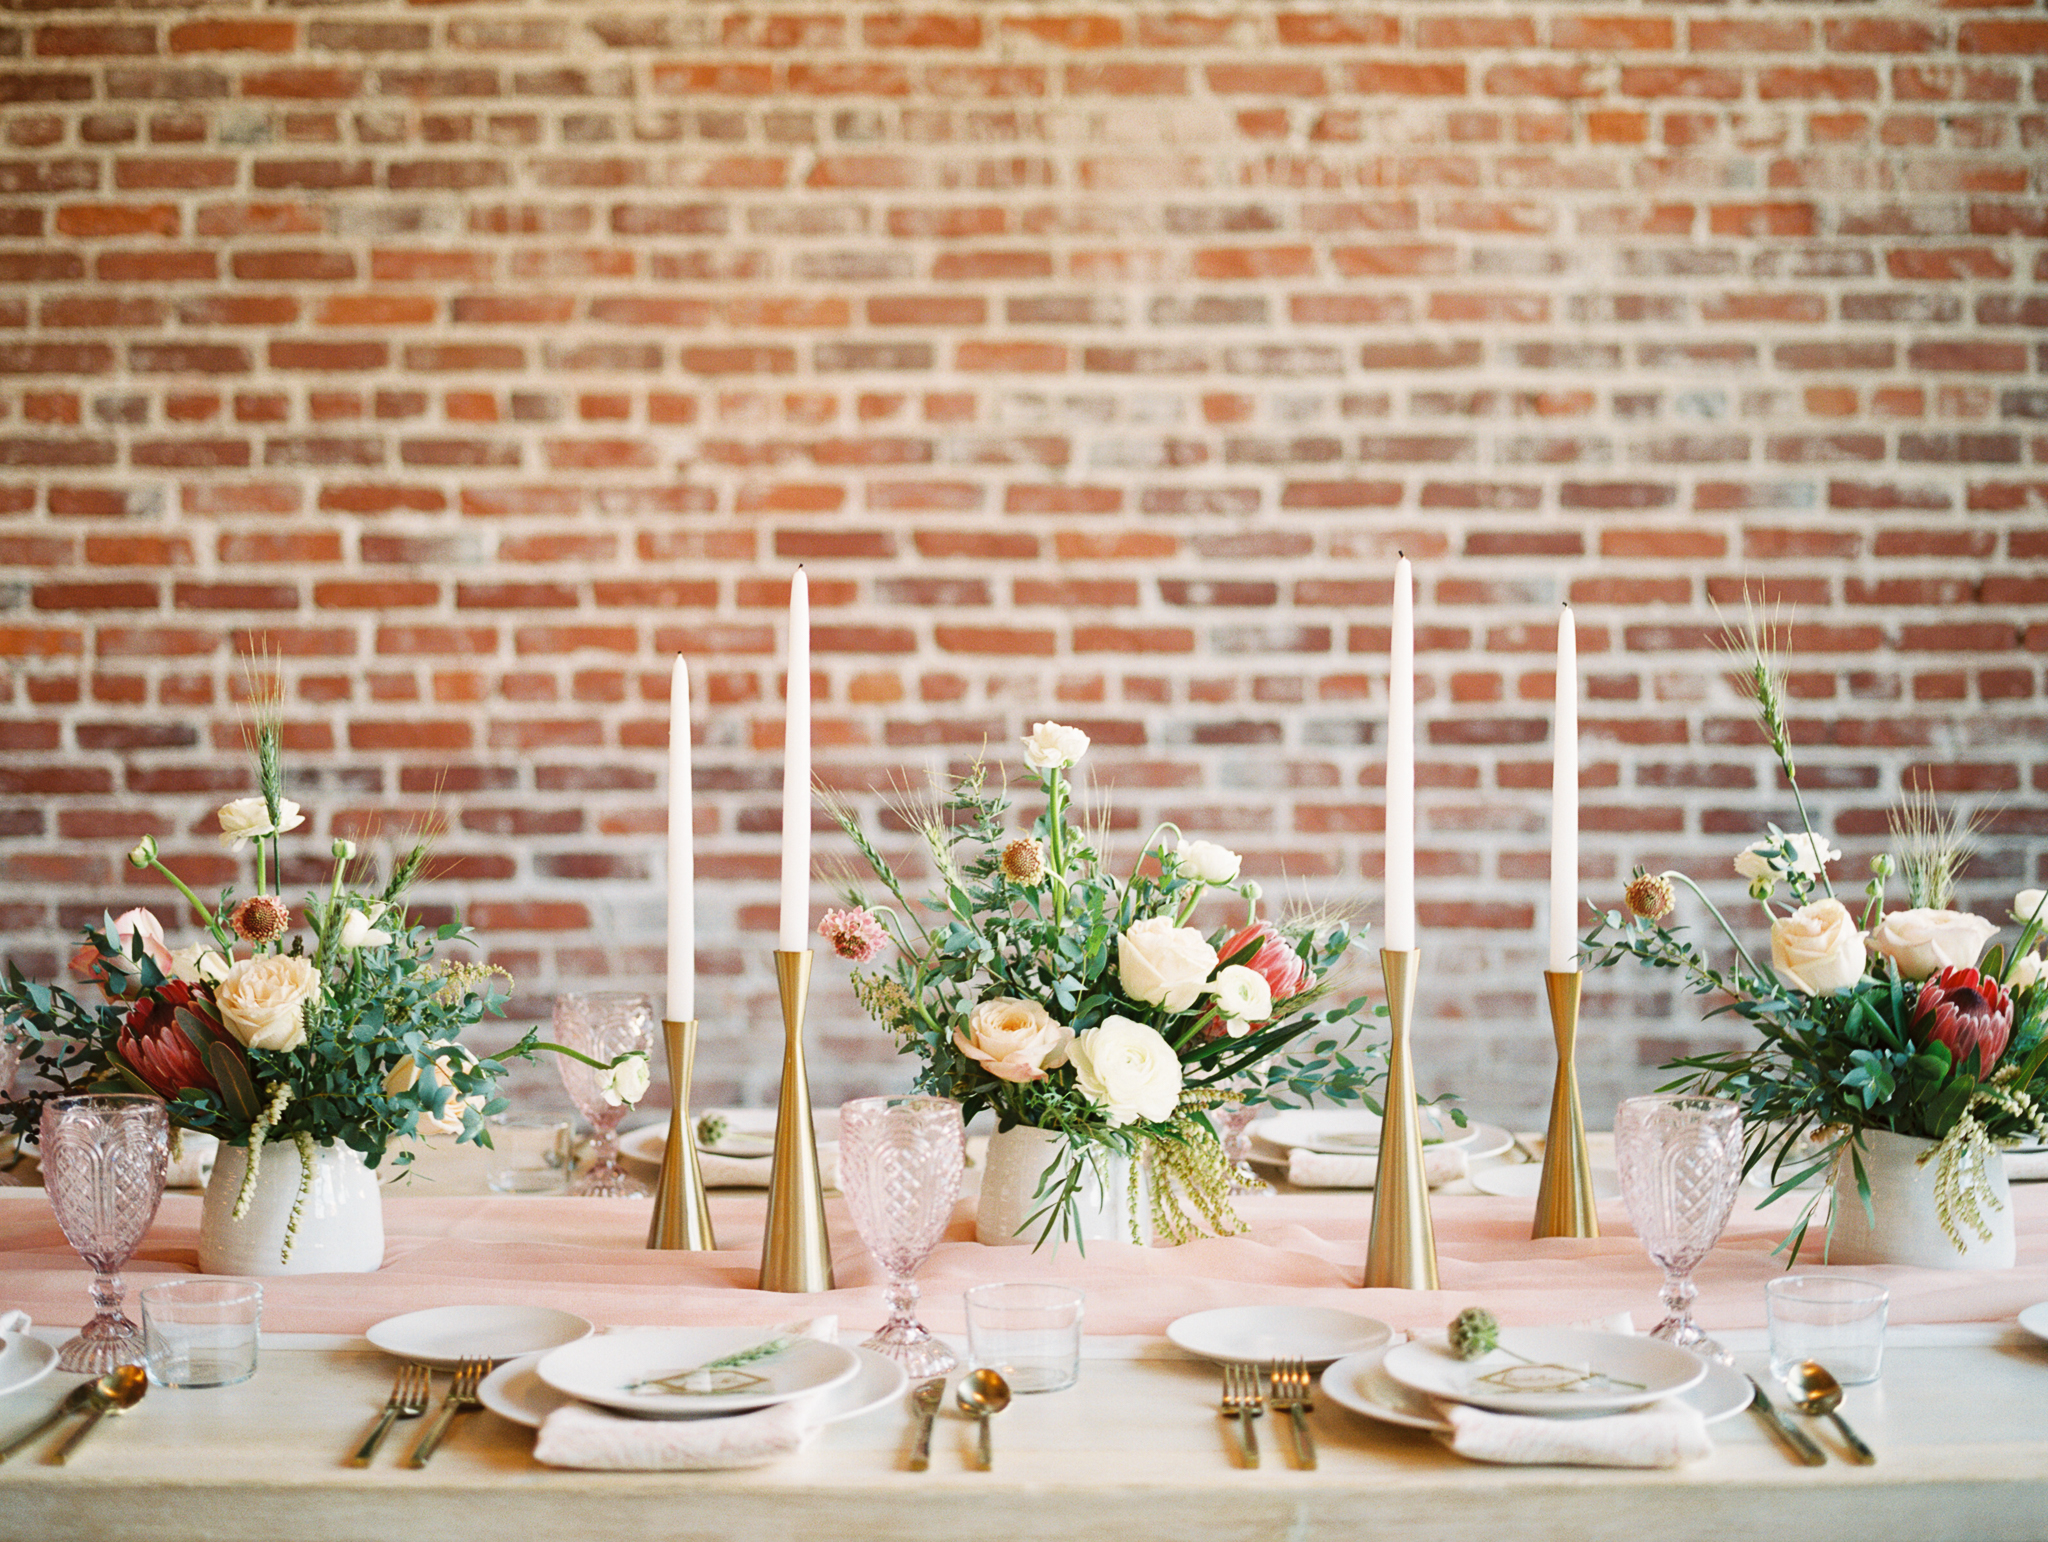 100LayerCake-wedding-table-eventscience-amygoldingphotography